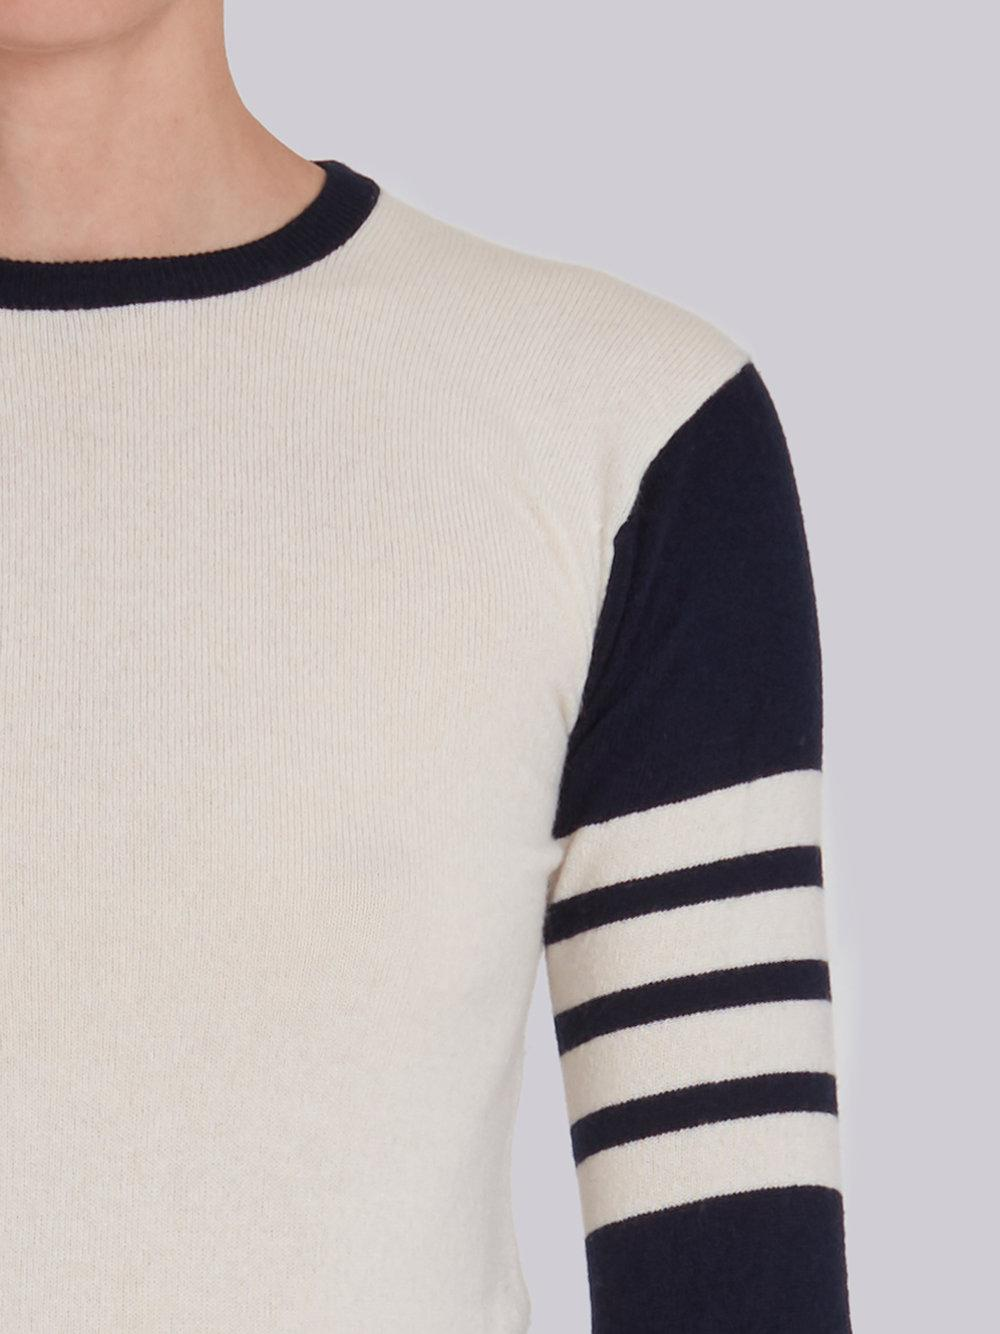 2018 New Classic Crewneck Pullover In Funmix Cashmere With 4-Bar Sleeve Stripe - Unavailable Thom Browne Fashionable For Sale Q5Bux